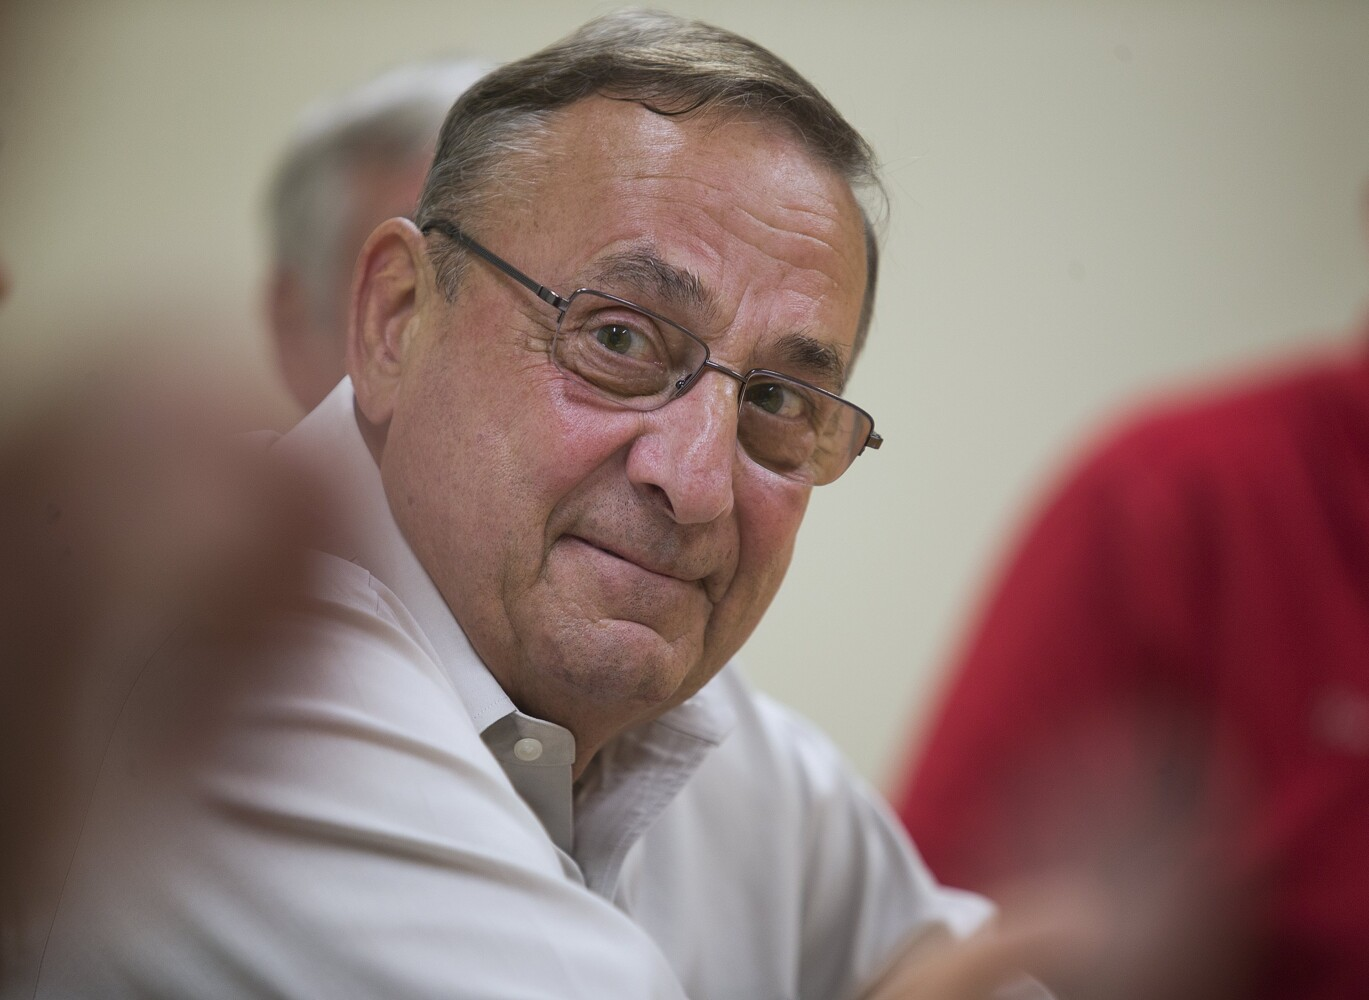 Former Maine Gov. LePage hints he may run again in 2022 - CentralMaine.com